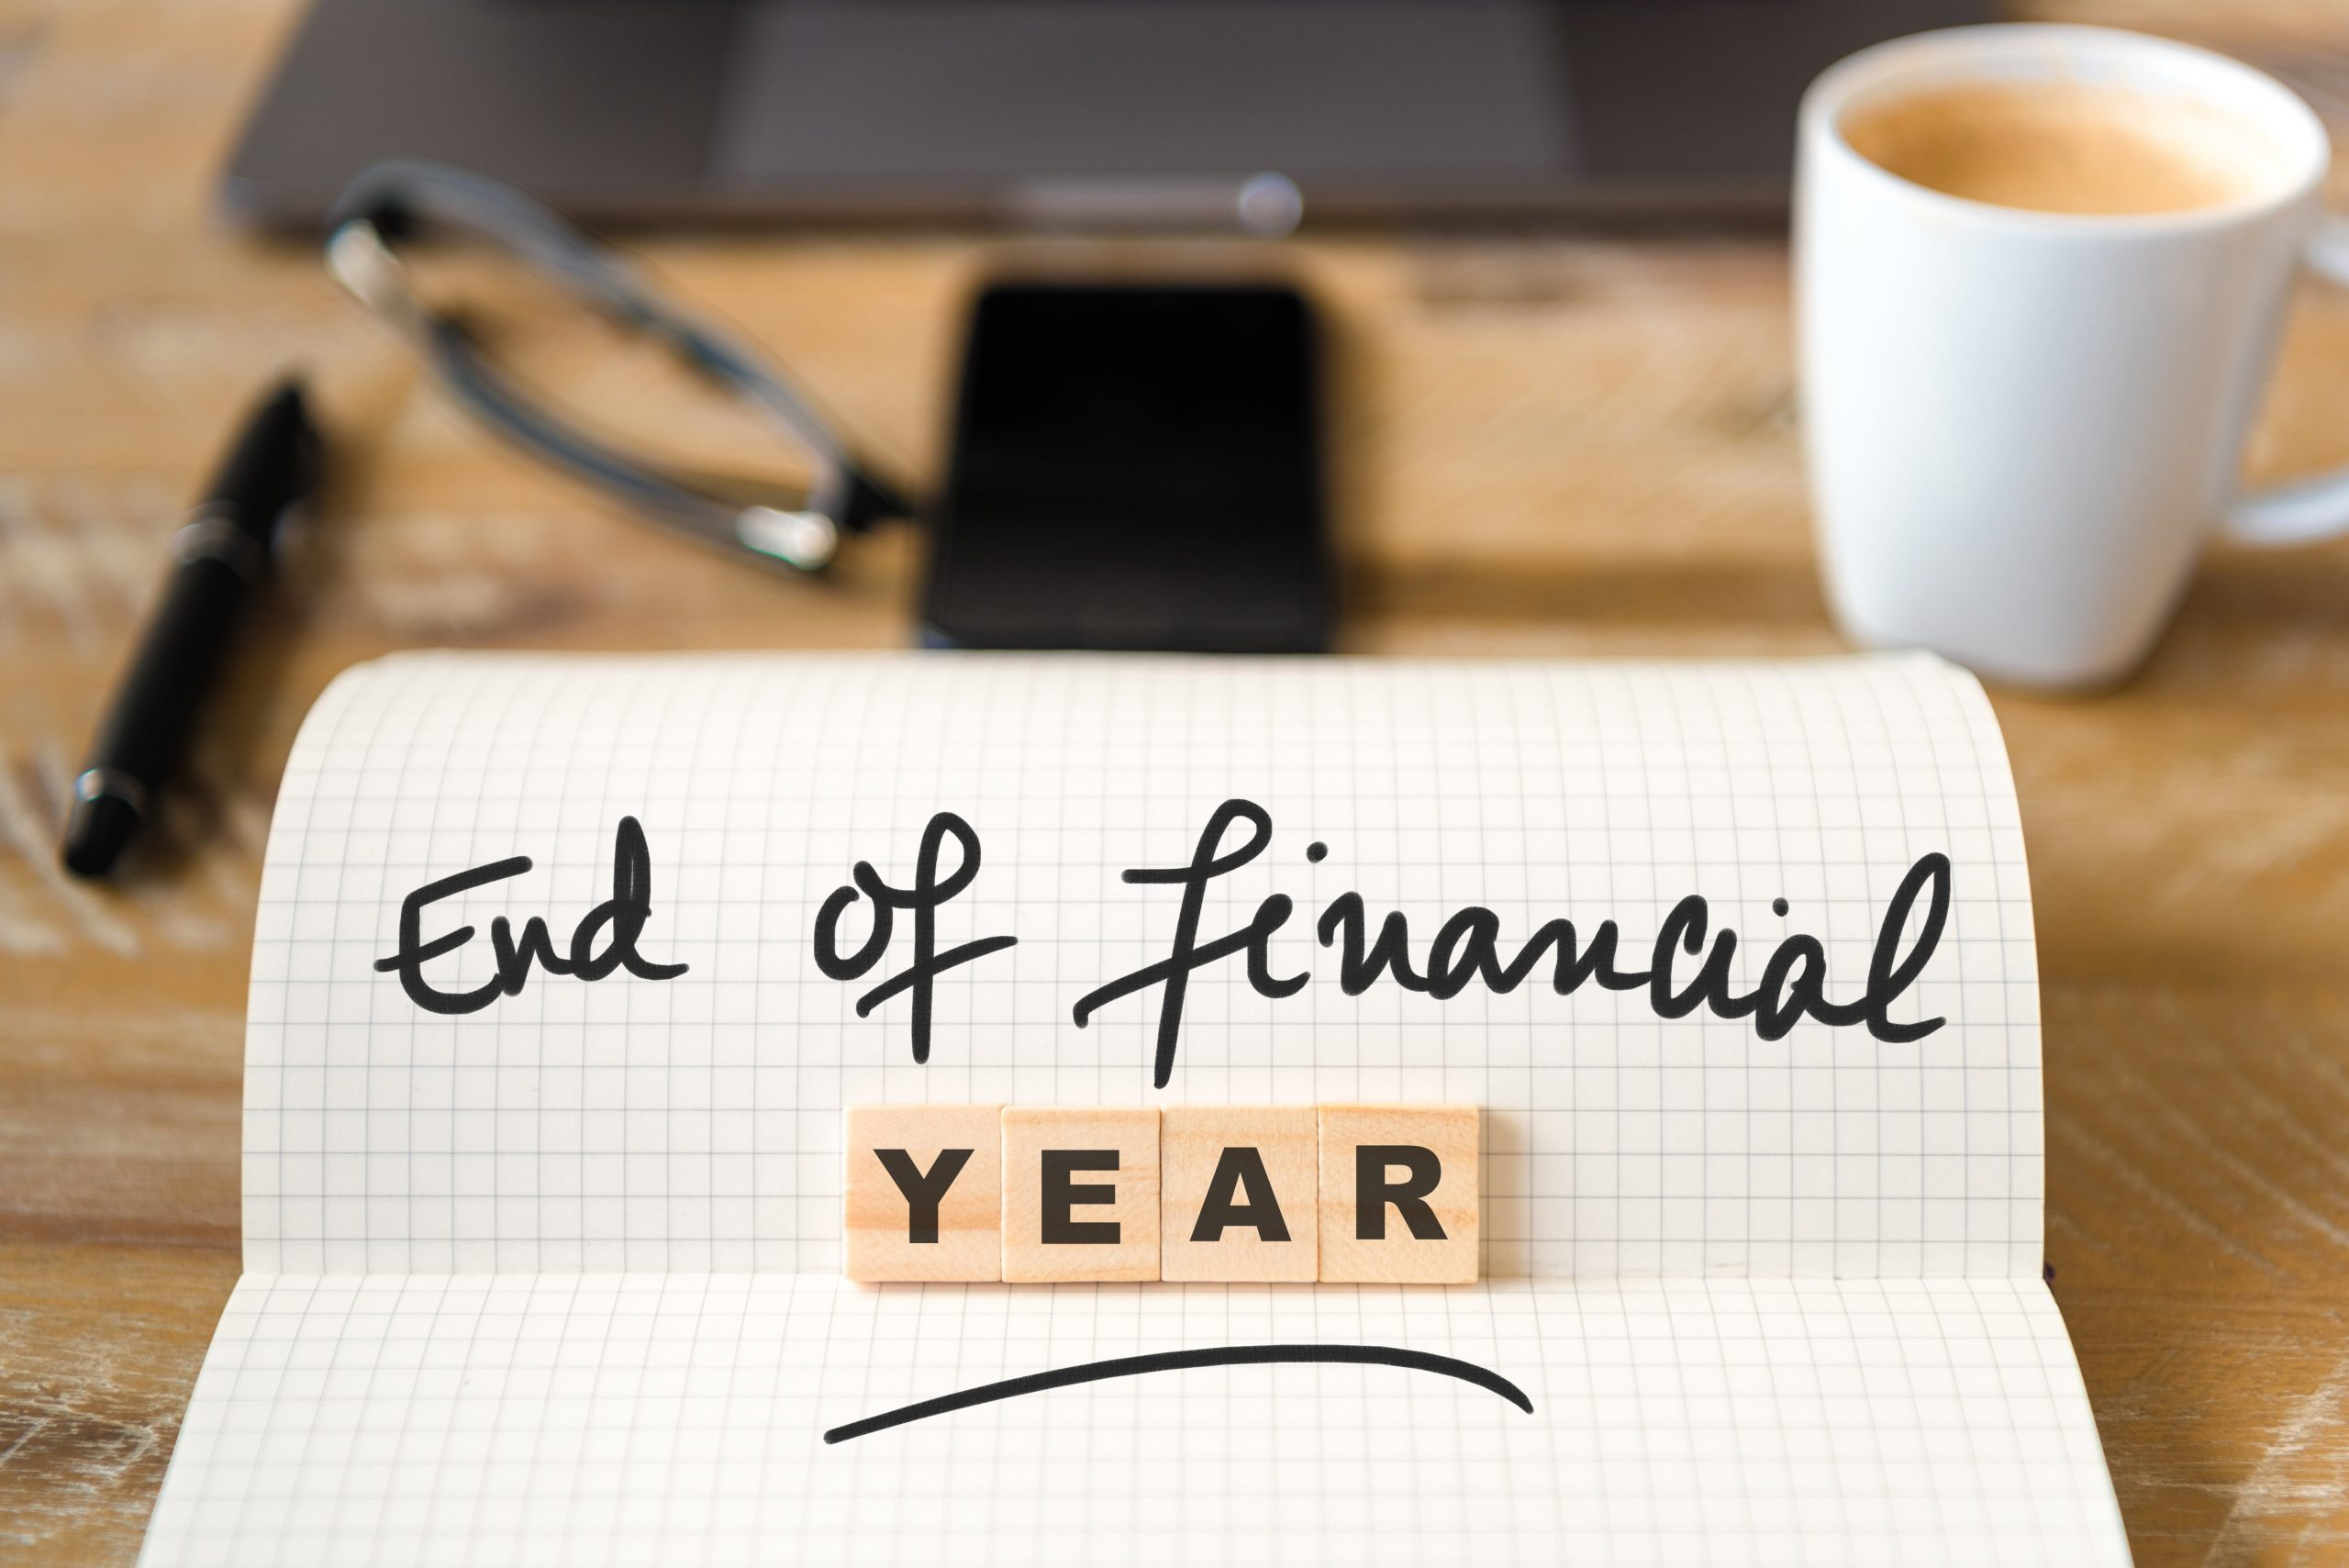 End of Financial Year for International Businesses